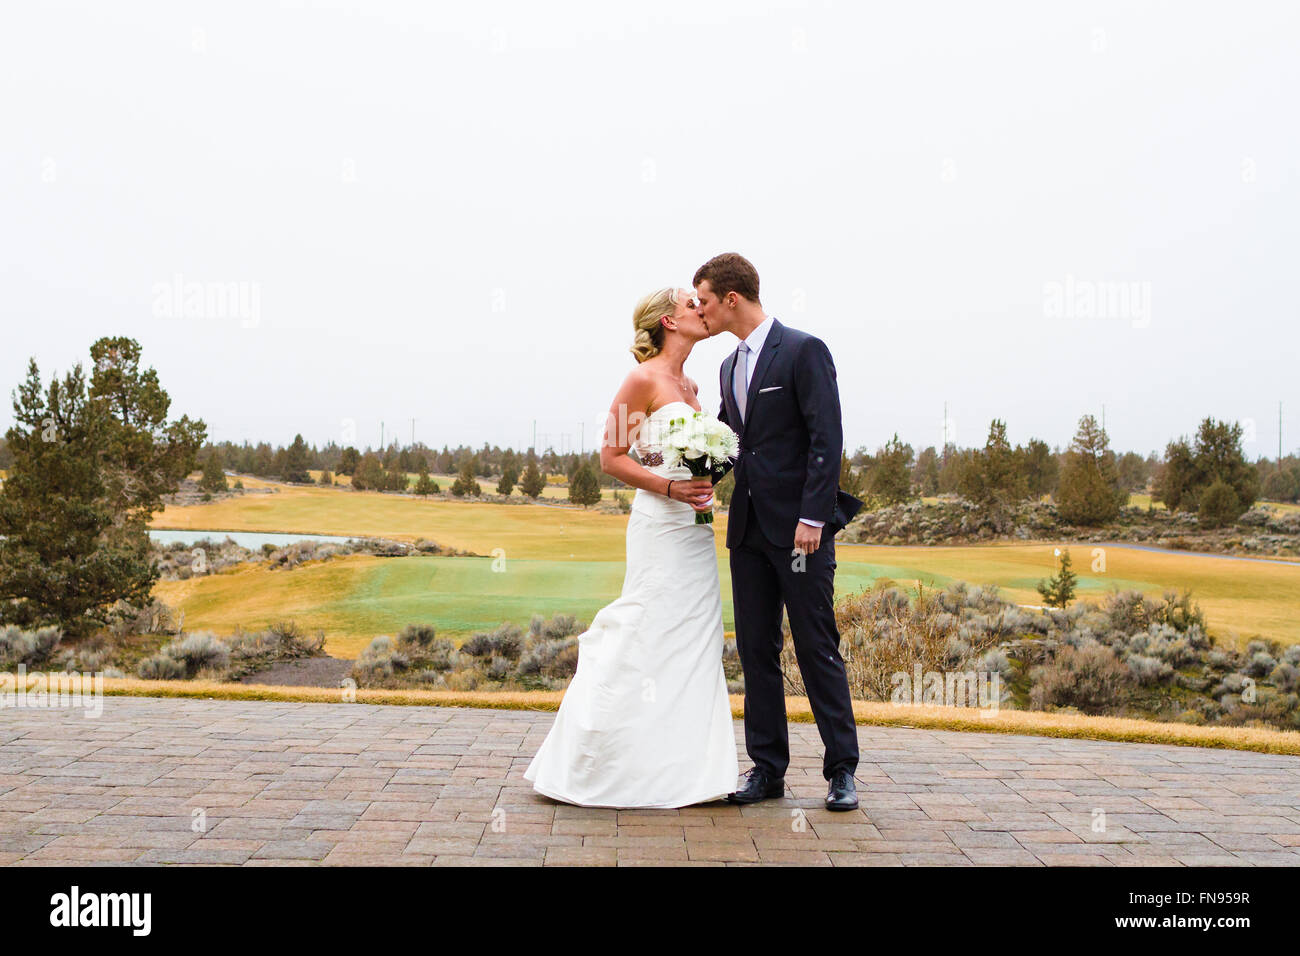 wedding stockfotos wedding bilder alamy. Black Bedroom Furniture Sets. Home Design Ideas